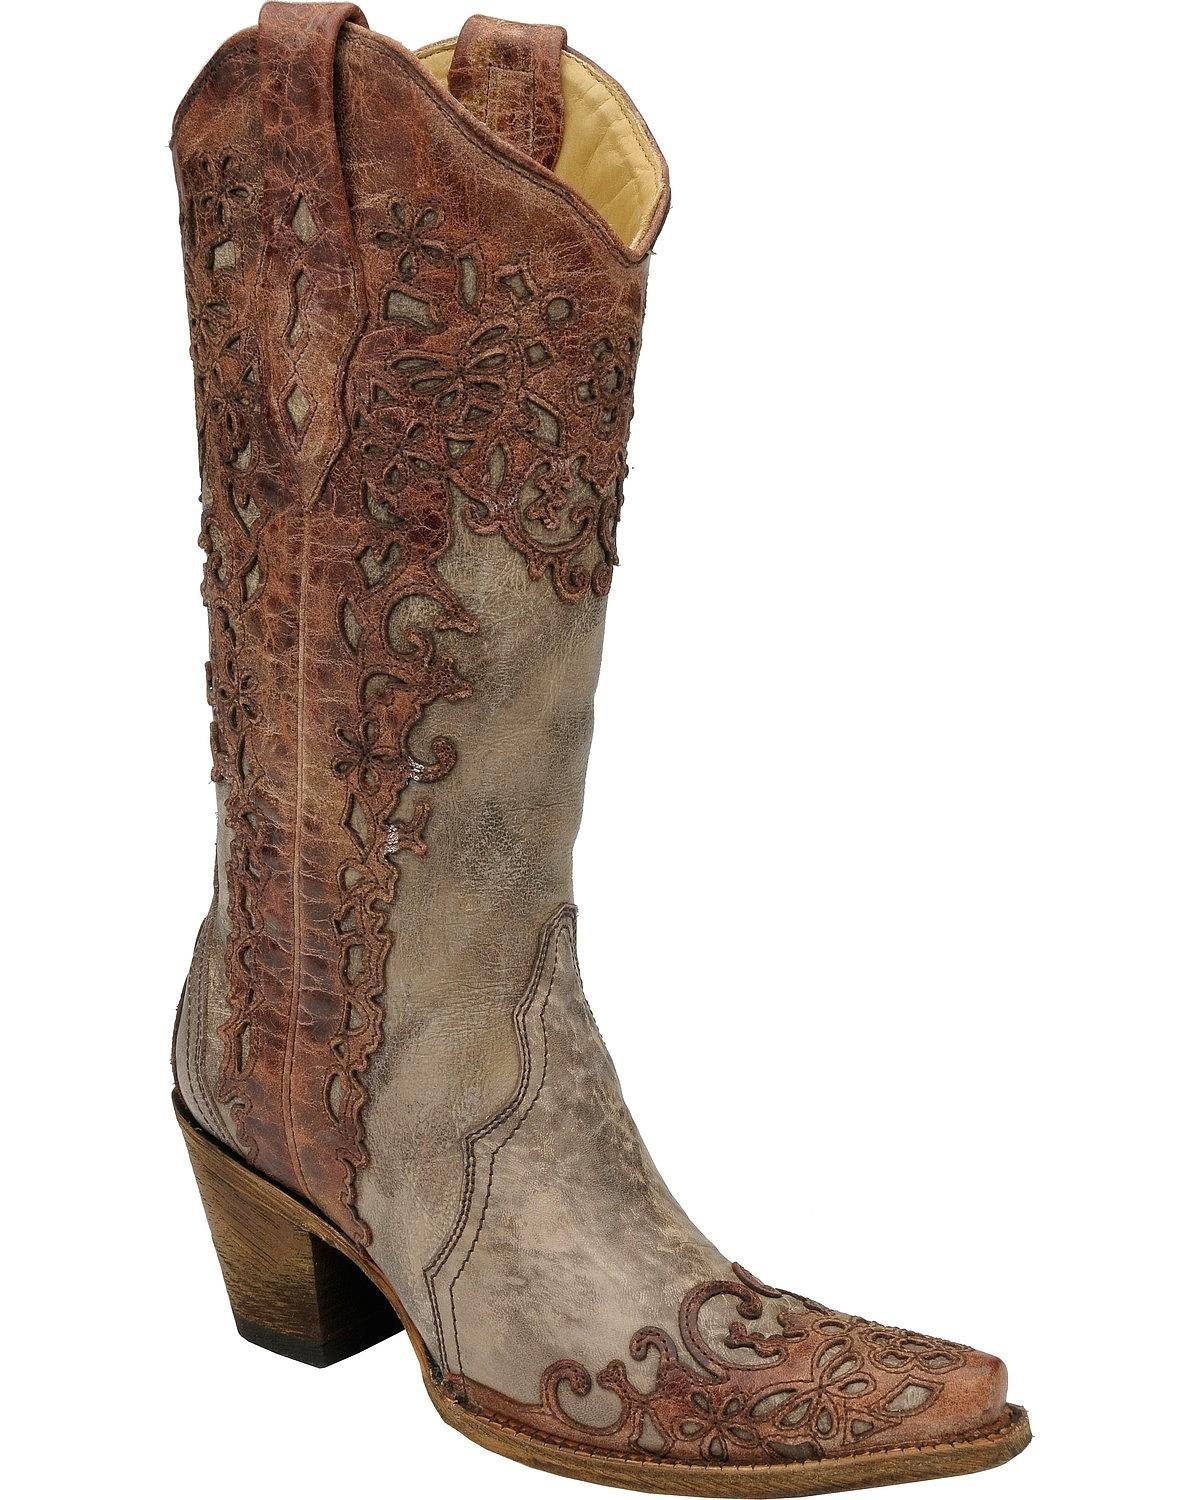 Corral Women's Sand and Cognac Laser Overlay Cowgirl Western Boot B01FQXWC5Q 8.5 B(M) US|Sand